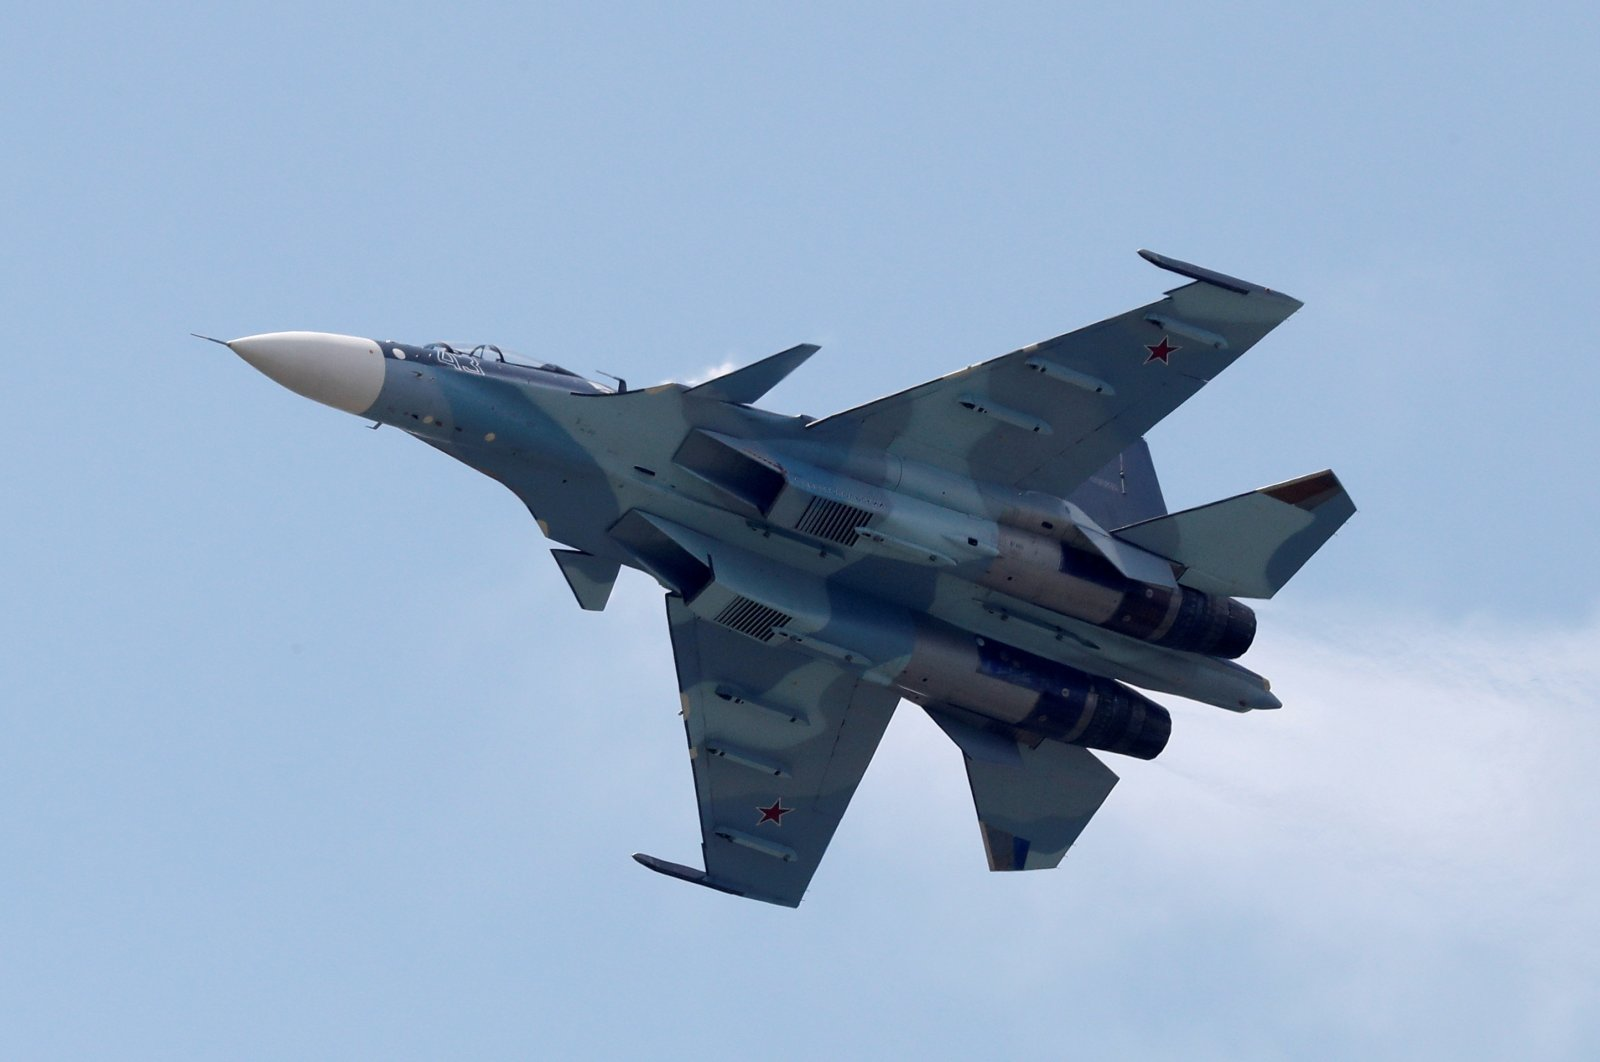 A Sukhoi Su-30SM jet fighter performs during a demonstration flight at the MAKS 2017 air show in Zhukovsky, outside Moscow, Russia, July 21, 2017. (Reuters Photo)